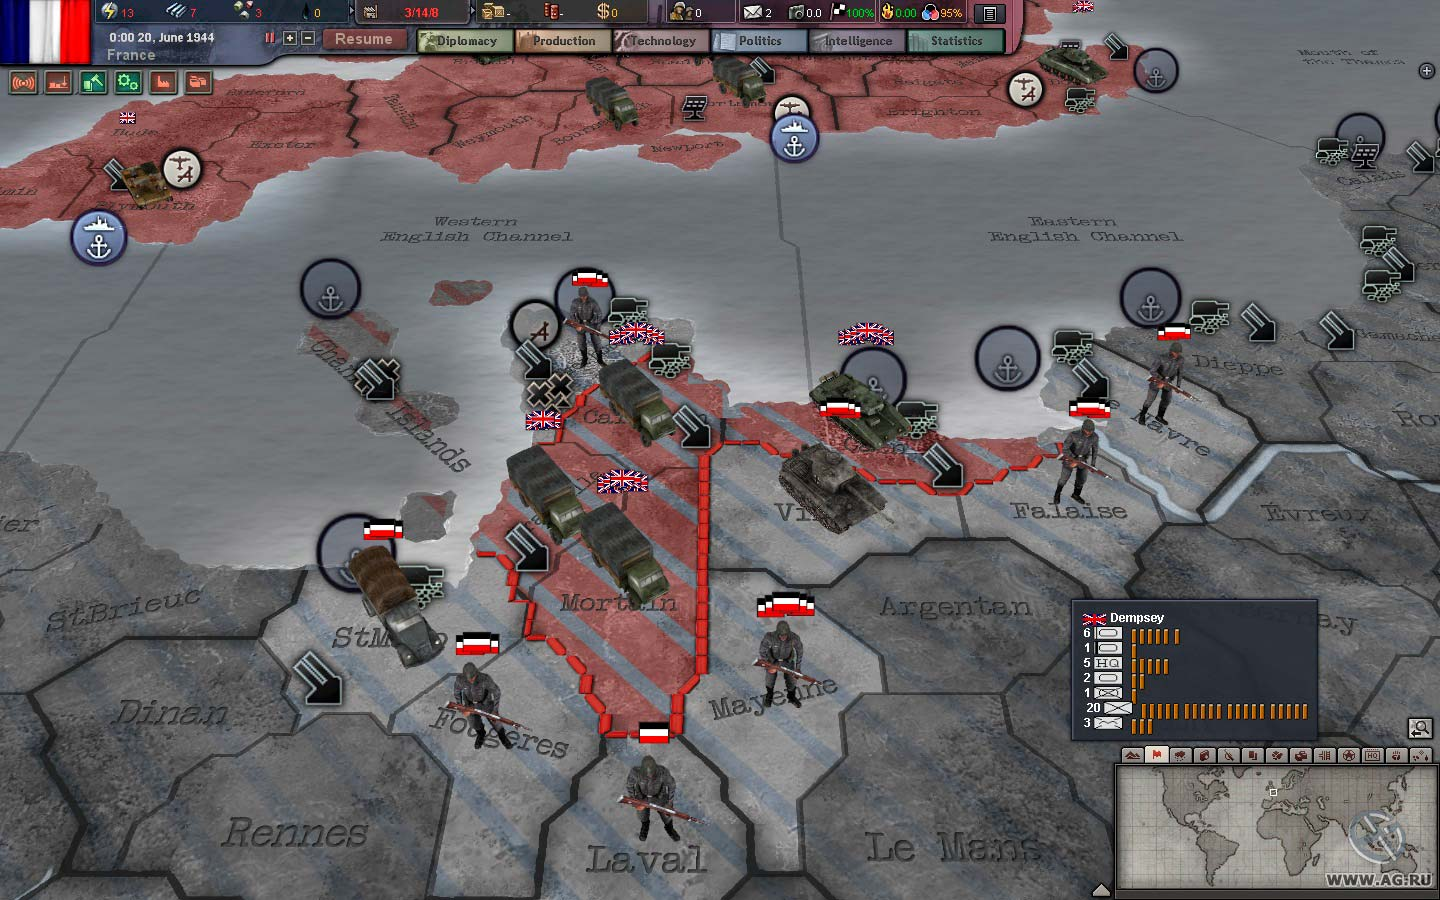 Hearts Of iron 3 Game Manual download